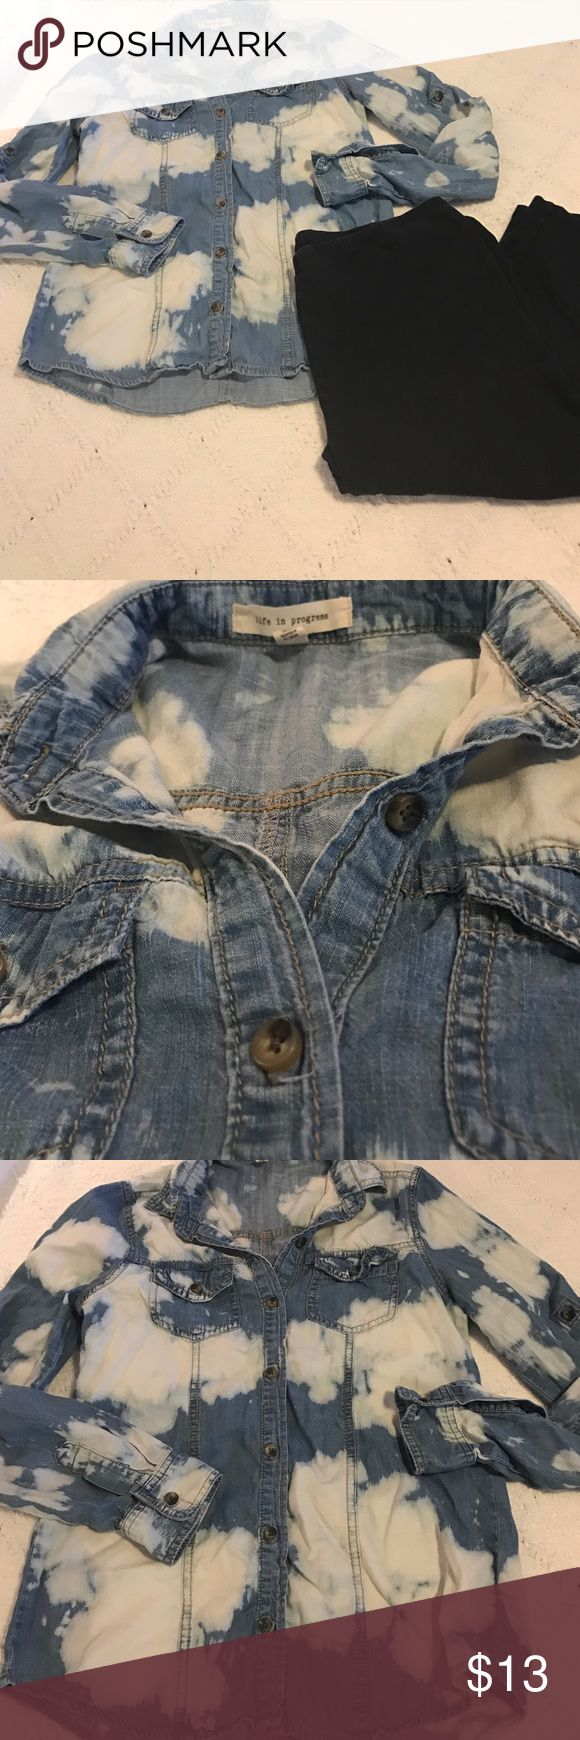 Life in Progress size small denim long sleeve top Cute and fun! Long sleeve denim top by Life in Progress. Size small. Good ore loved condition from smoke free home. Pants for display only. (BIN 4) Life in Progress Tops Button Down Shirts